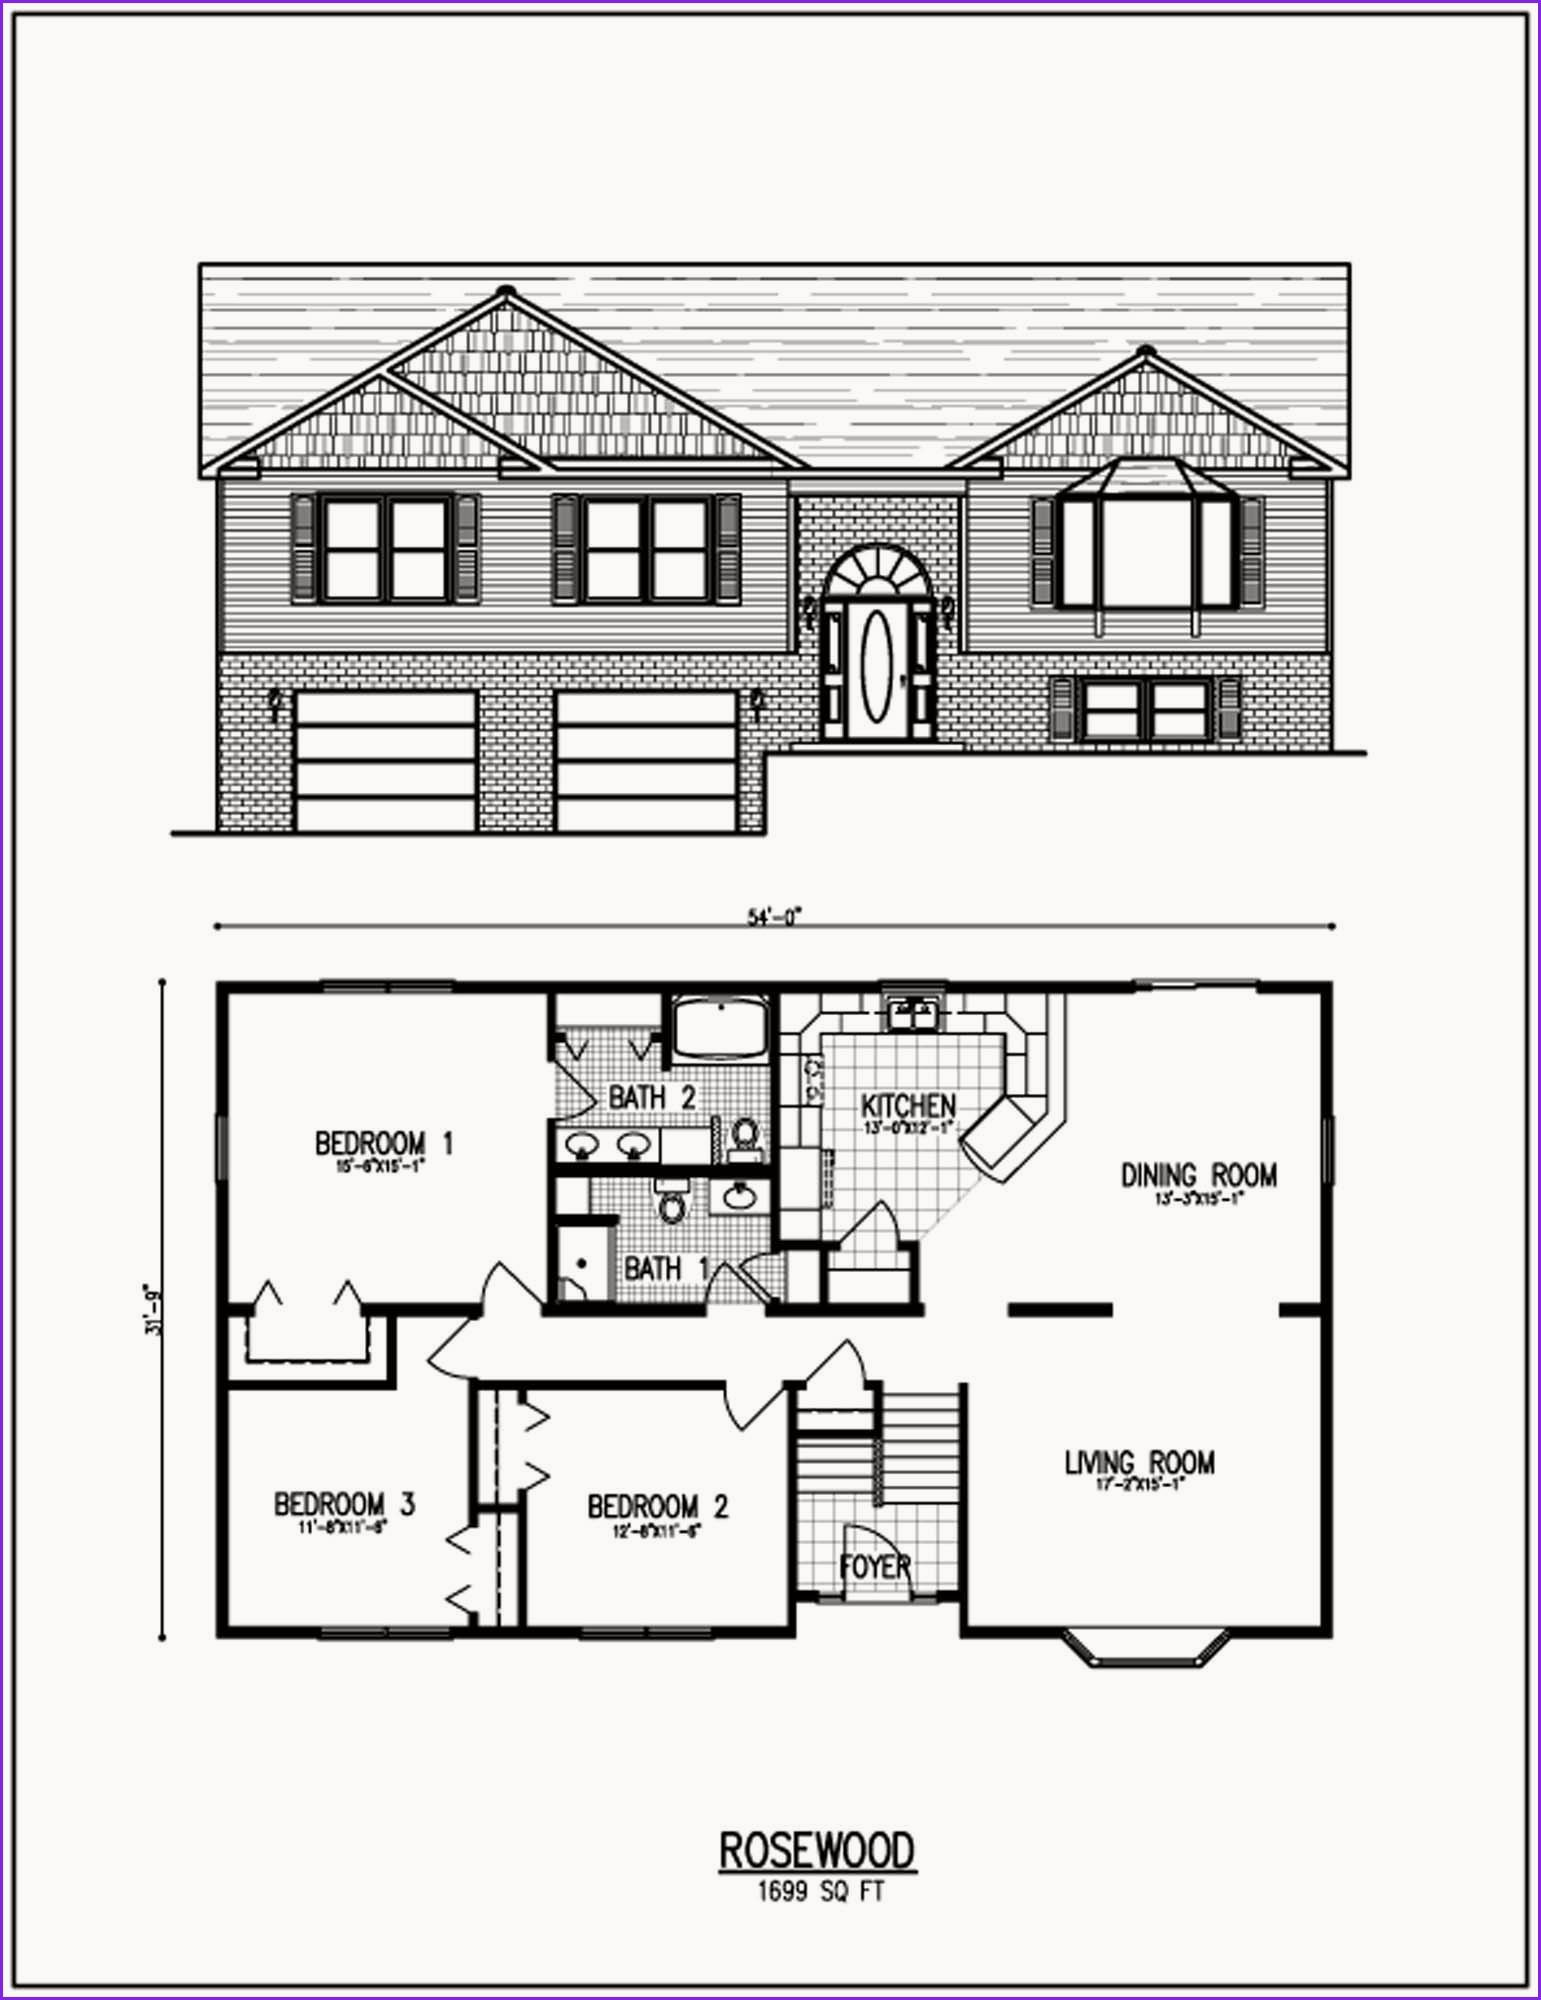 Awesome Elevated Home Plans Ranch House Plans Ranch Style House Plans Floor Plans Ranch